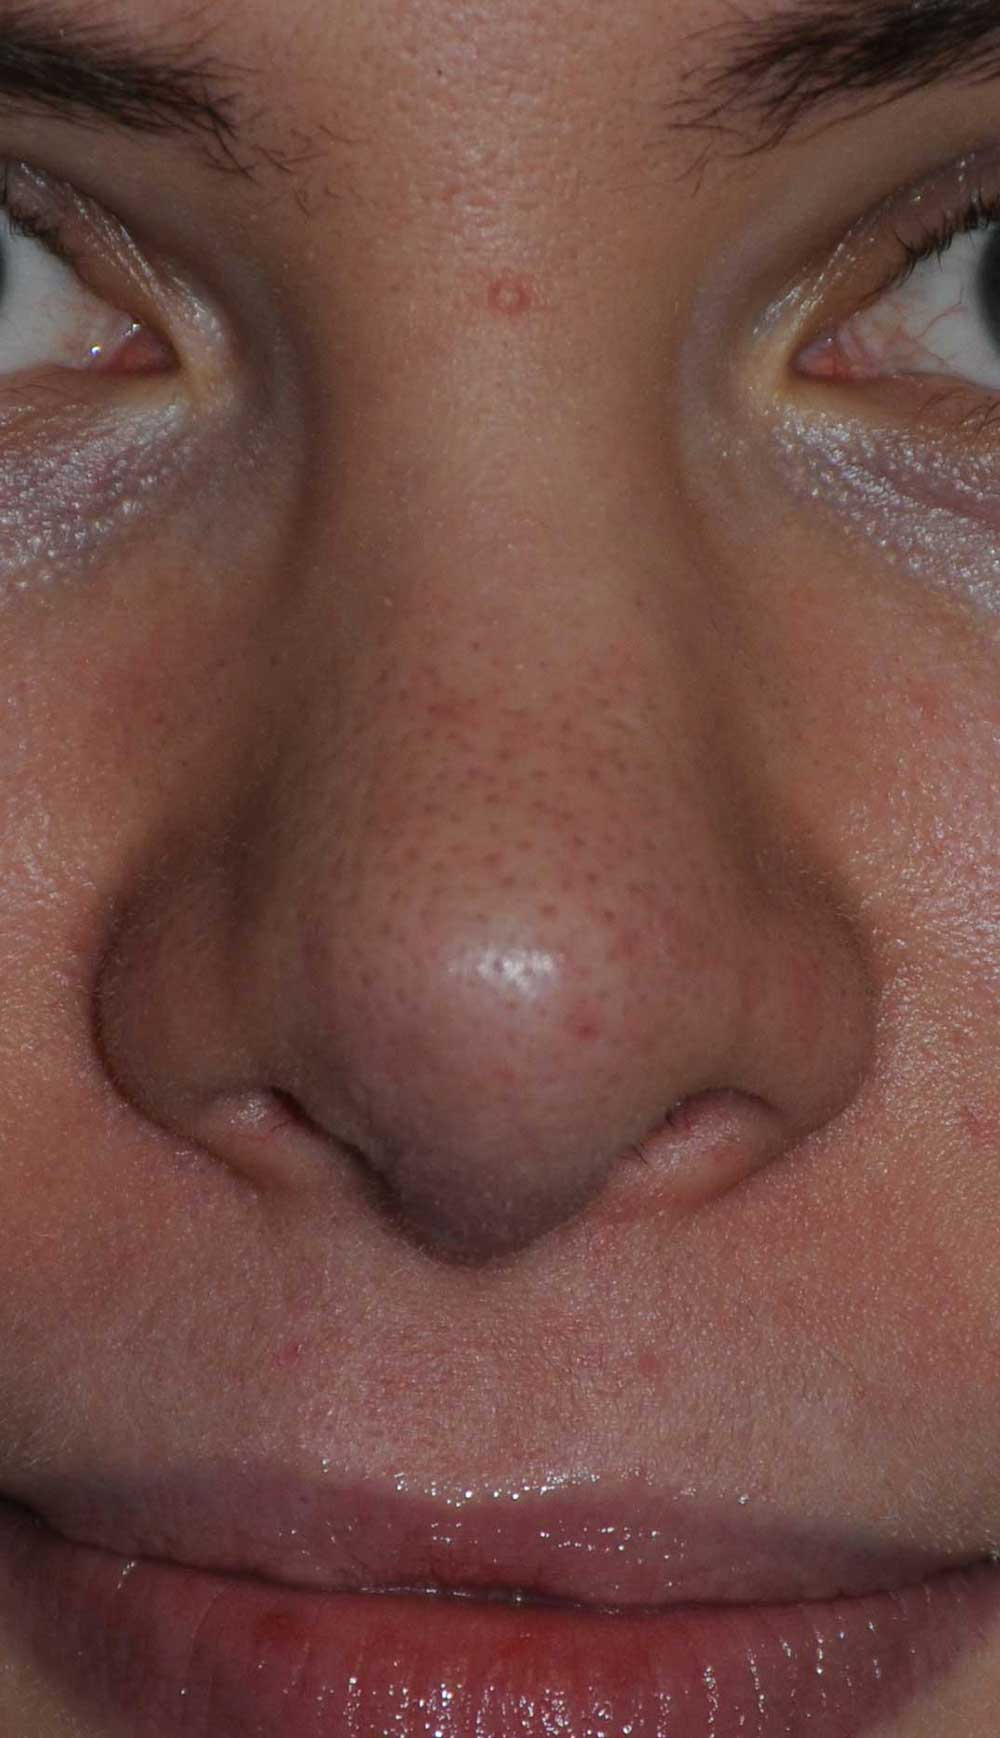 After Revision Rhinoplasty for Droopy Tip, Tip Irregularities, Nasal Bridge Bump, Narrowed Right more than Left Nasal Airway, Collapsing Nostrils, and Crooked Nose.